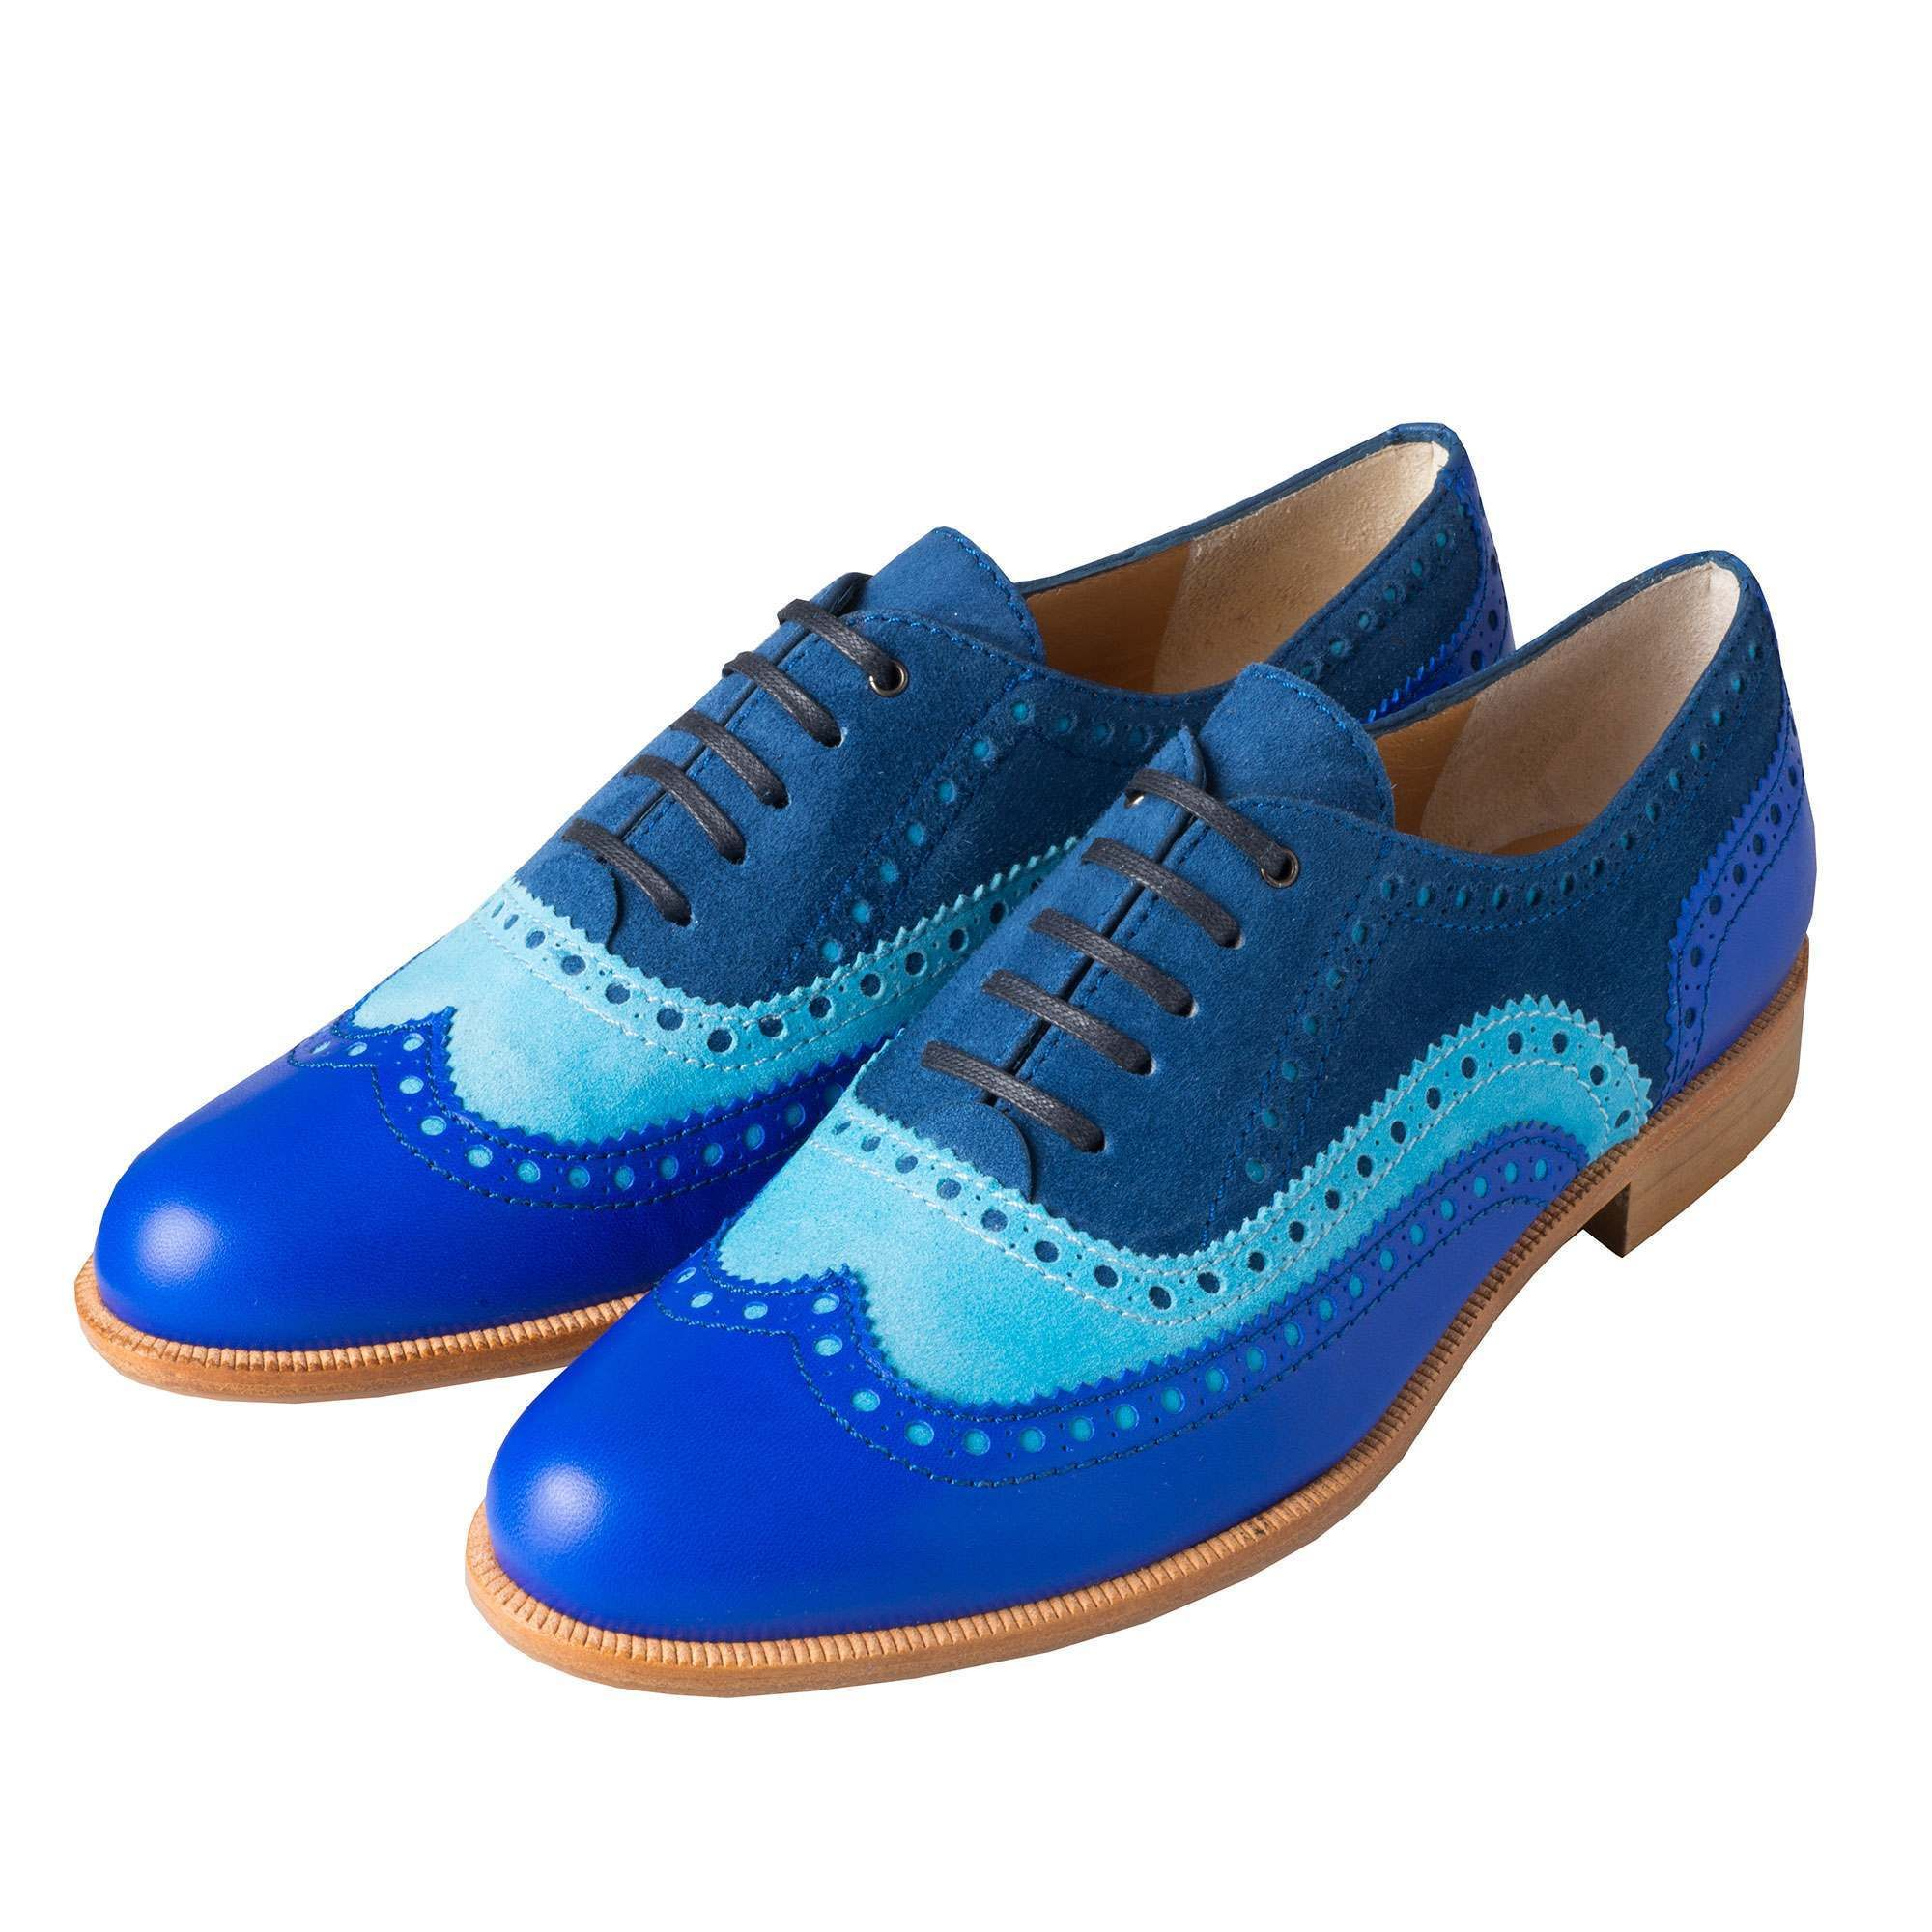 Blue Leather and Suede Brogue Shoes